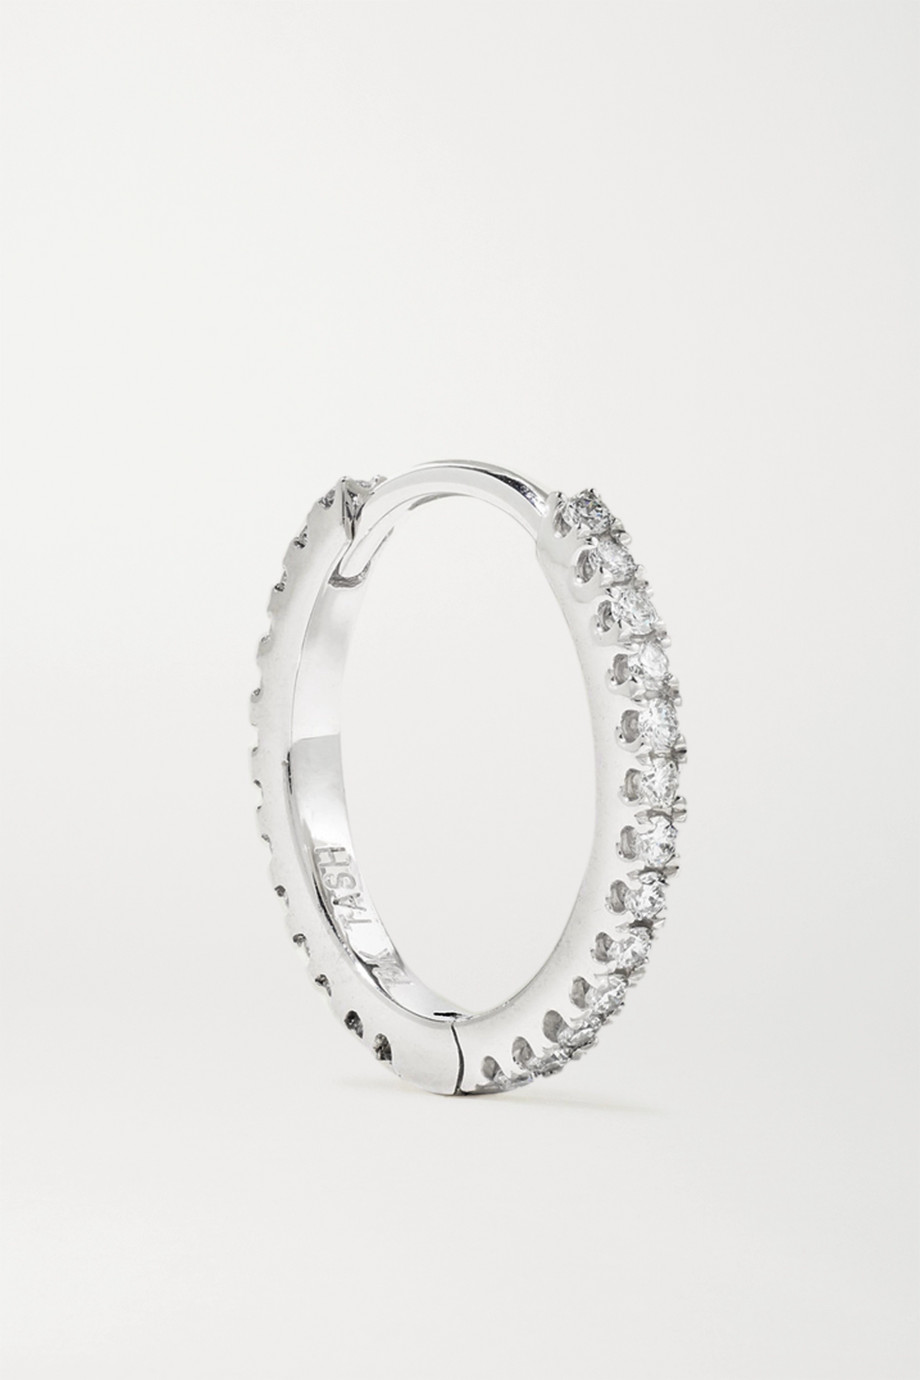 Maria Tash Eternity 9.5mm 18-karat white gold diamond hoop earring